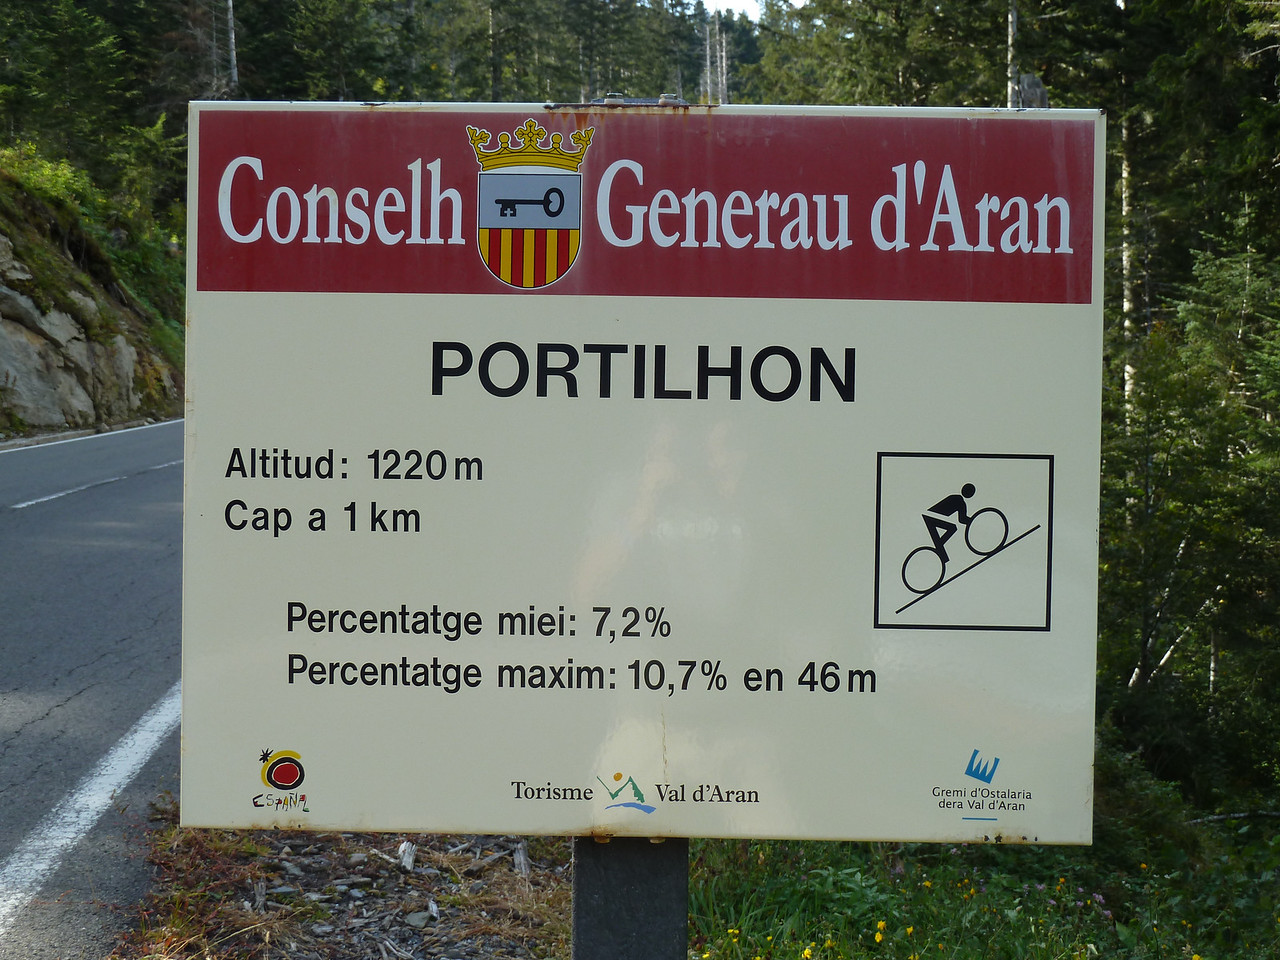 While driving through the Pyrenees, we followed famous Tour de France climbs, such as this one!